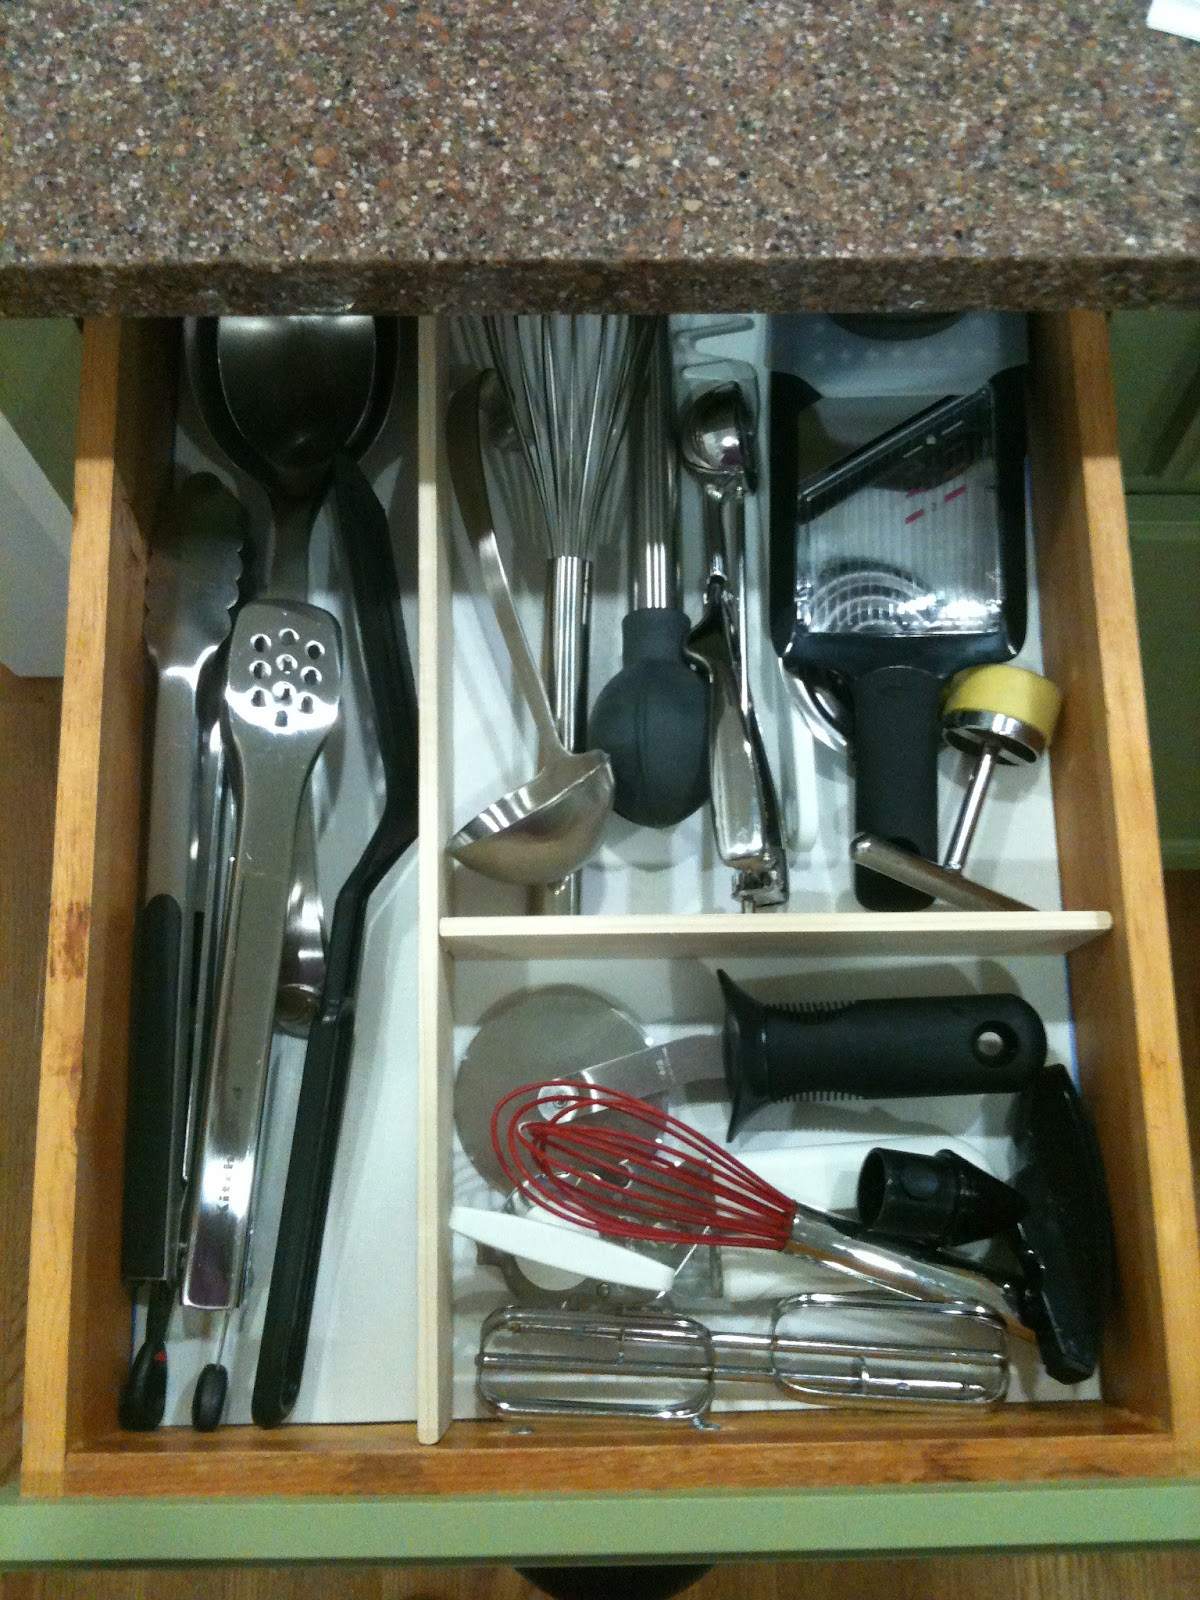 Best ideas about DIY Kitchen Drawer Dividers . Save or Pin Biddle Bits Easy DIY kitchen drawer dividers Now.